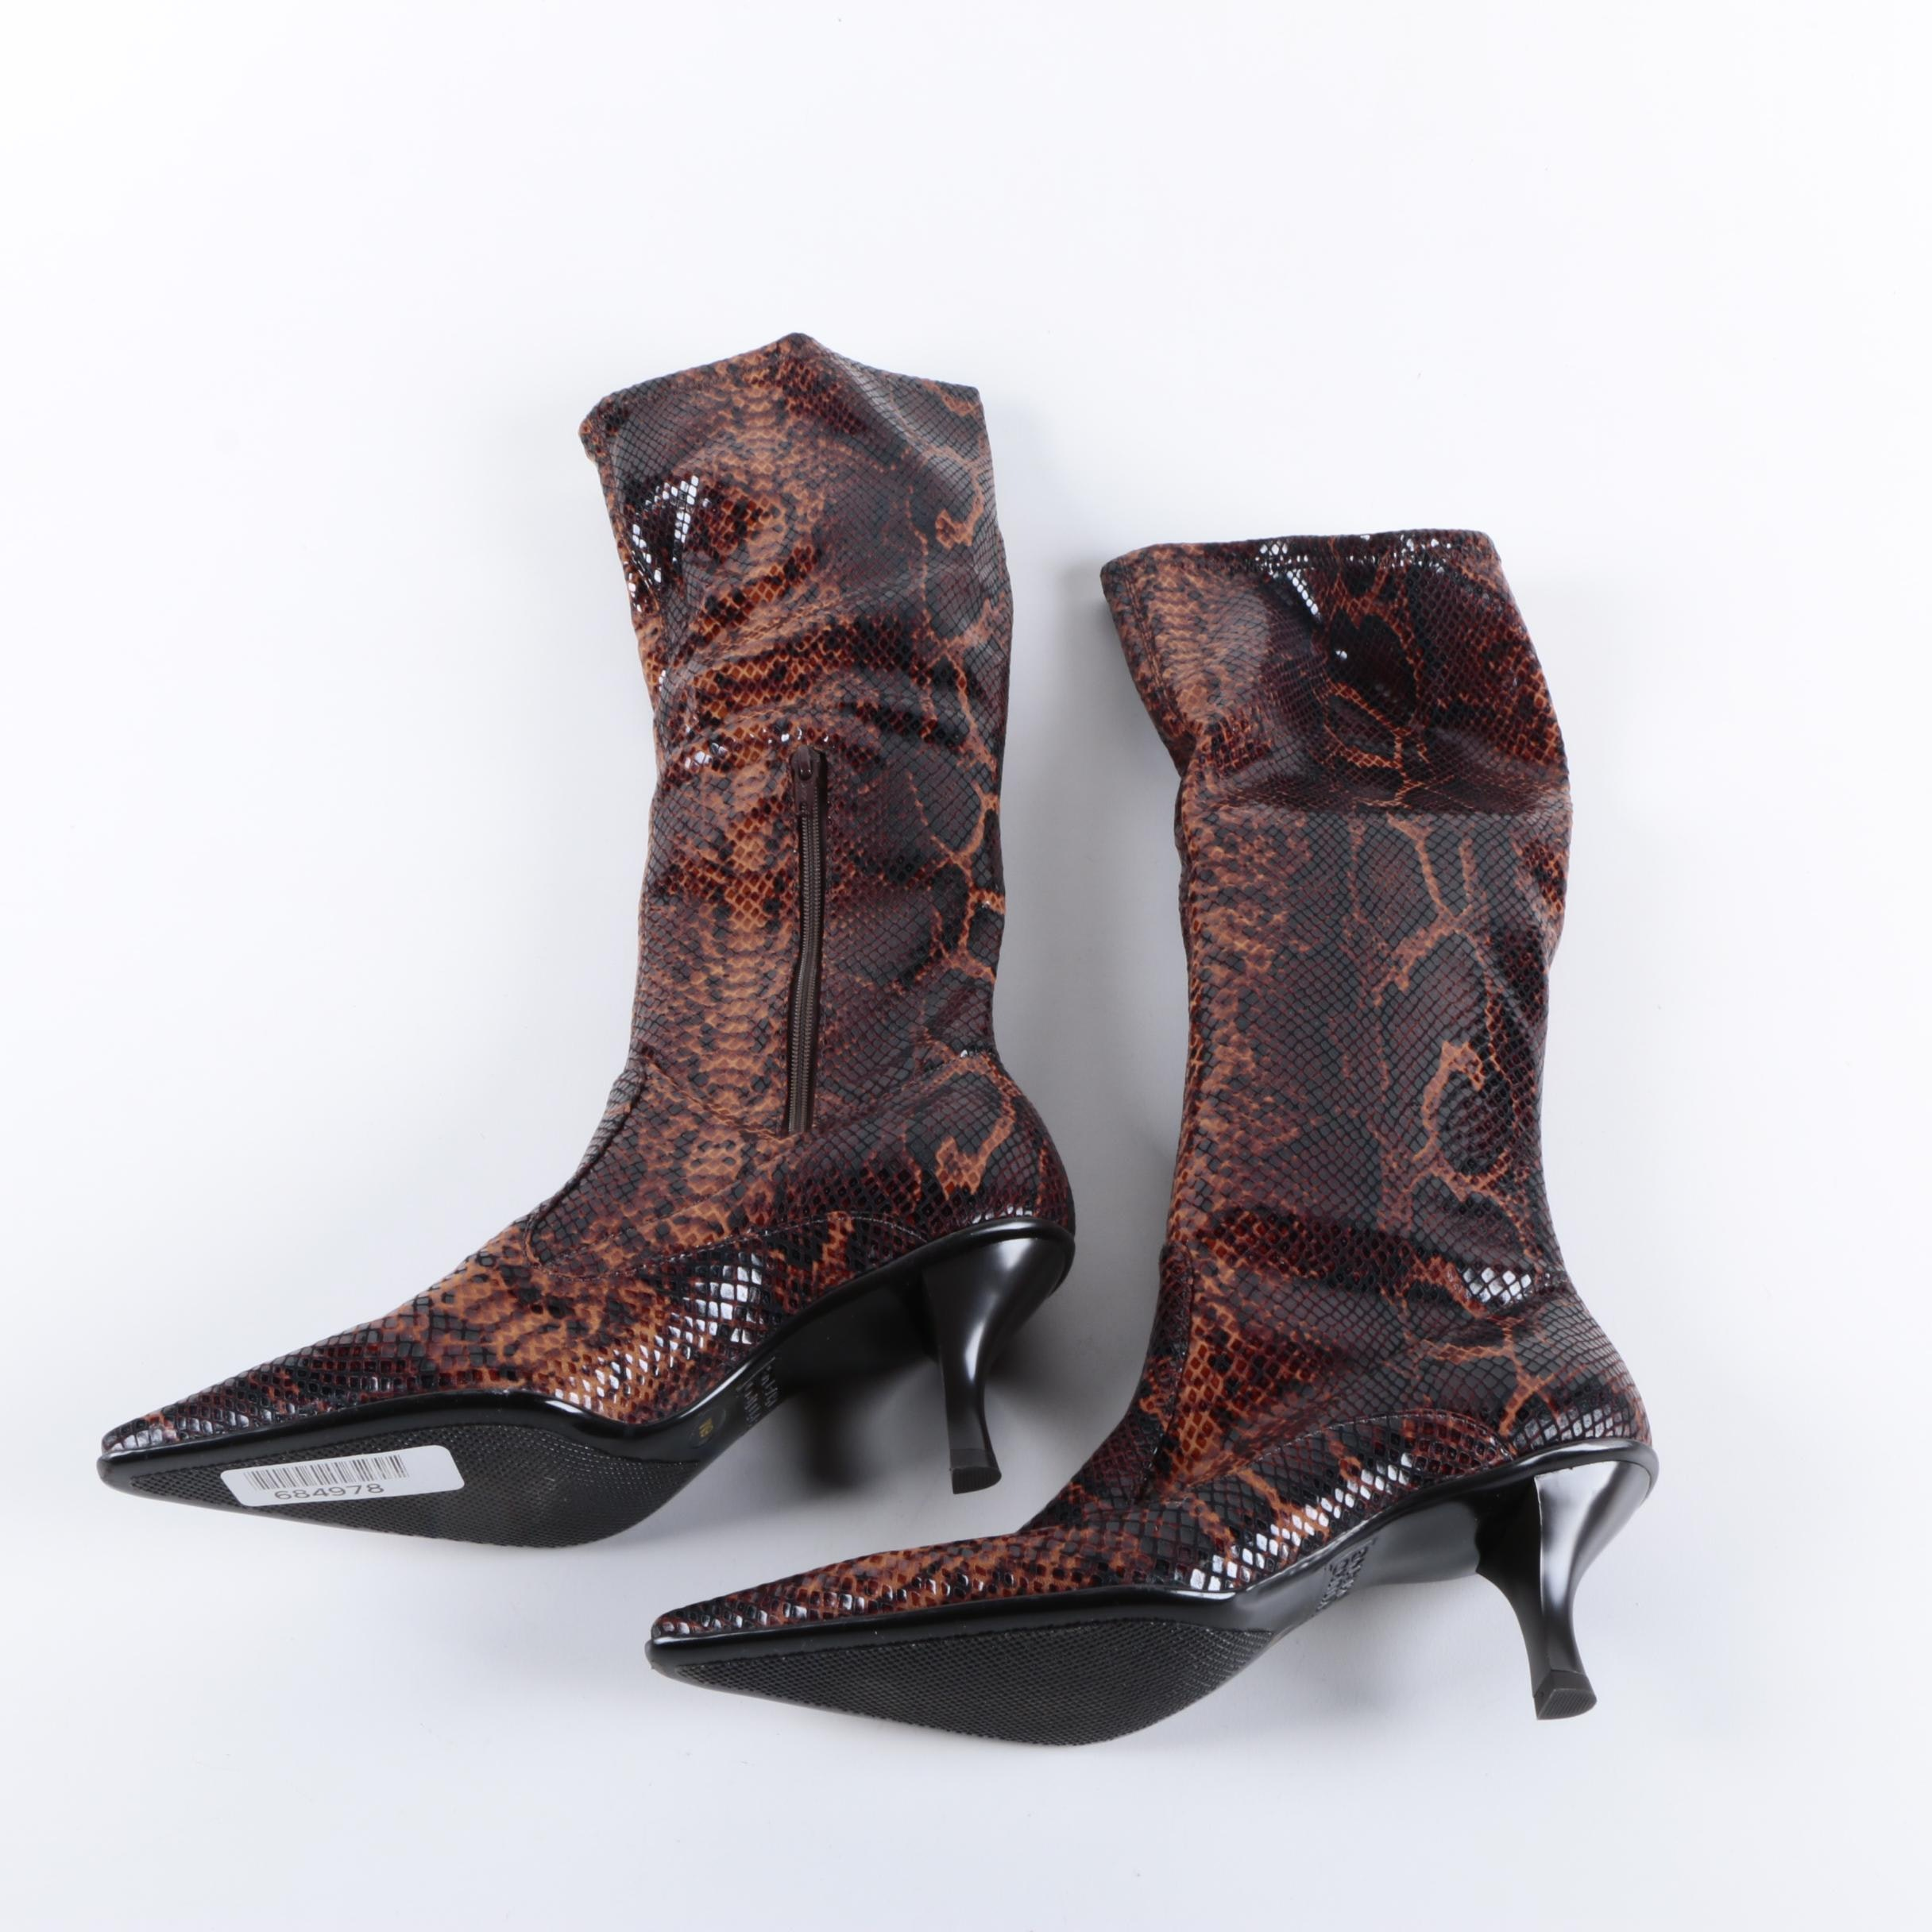 Women's Arturo Chiang High Heeled Boots